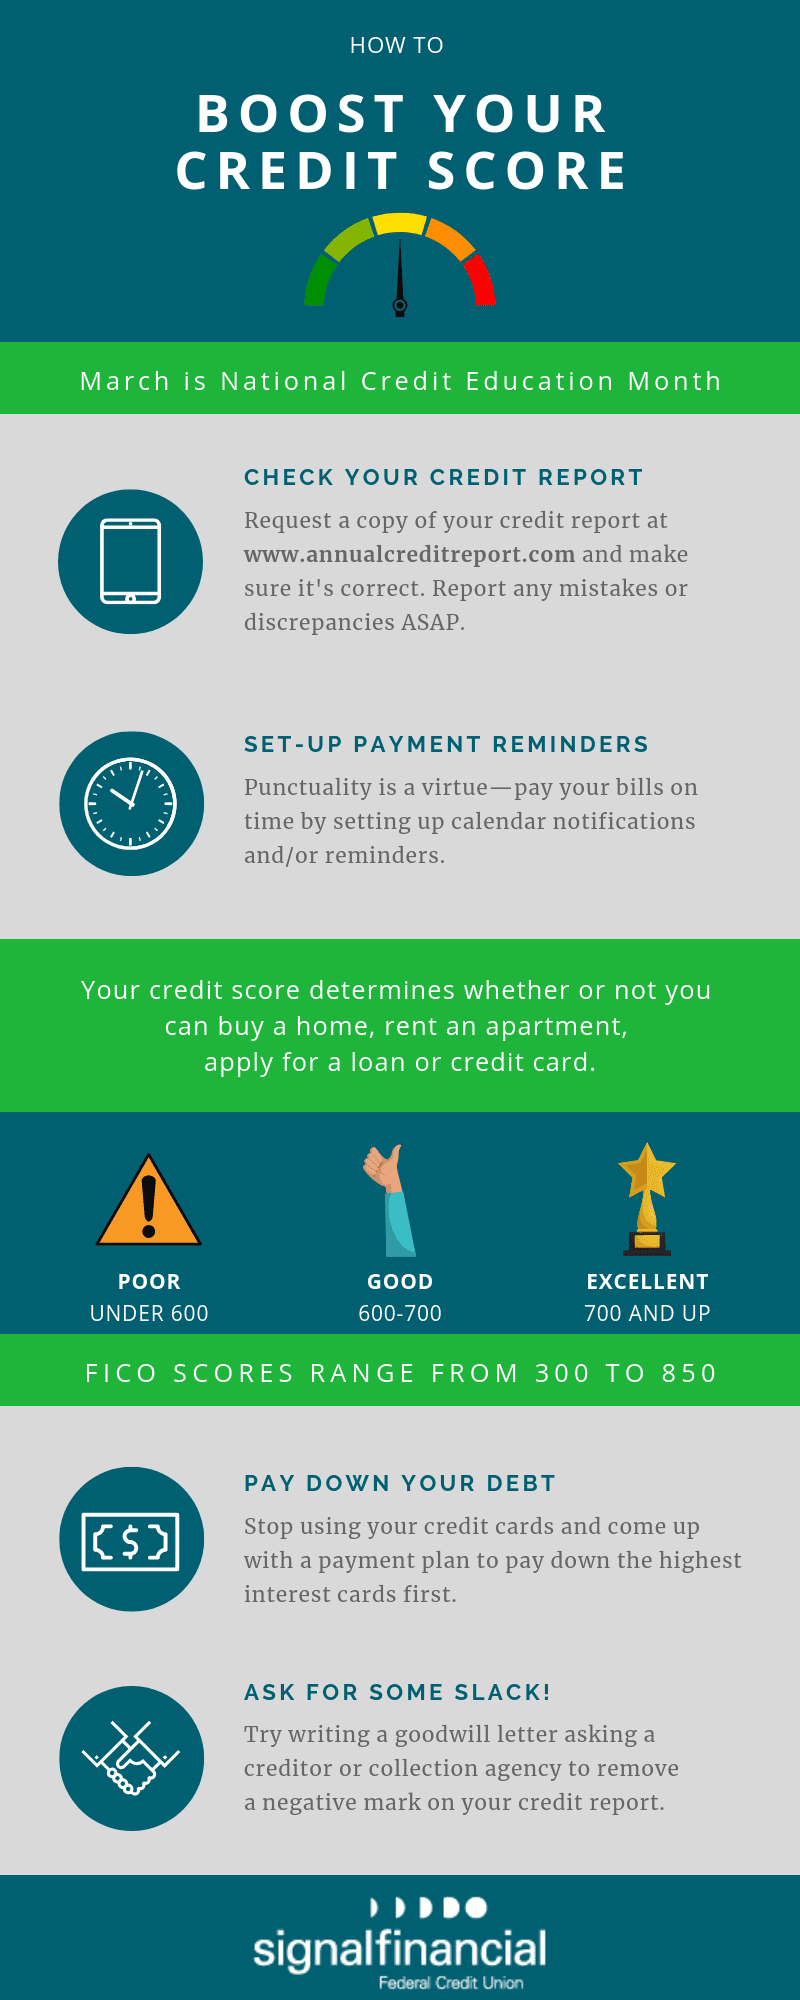 How to boost your credit score for National Credit Education Month